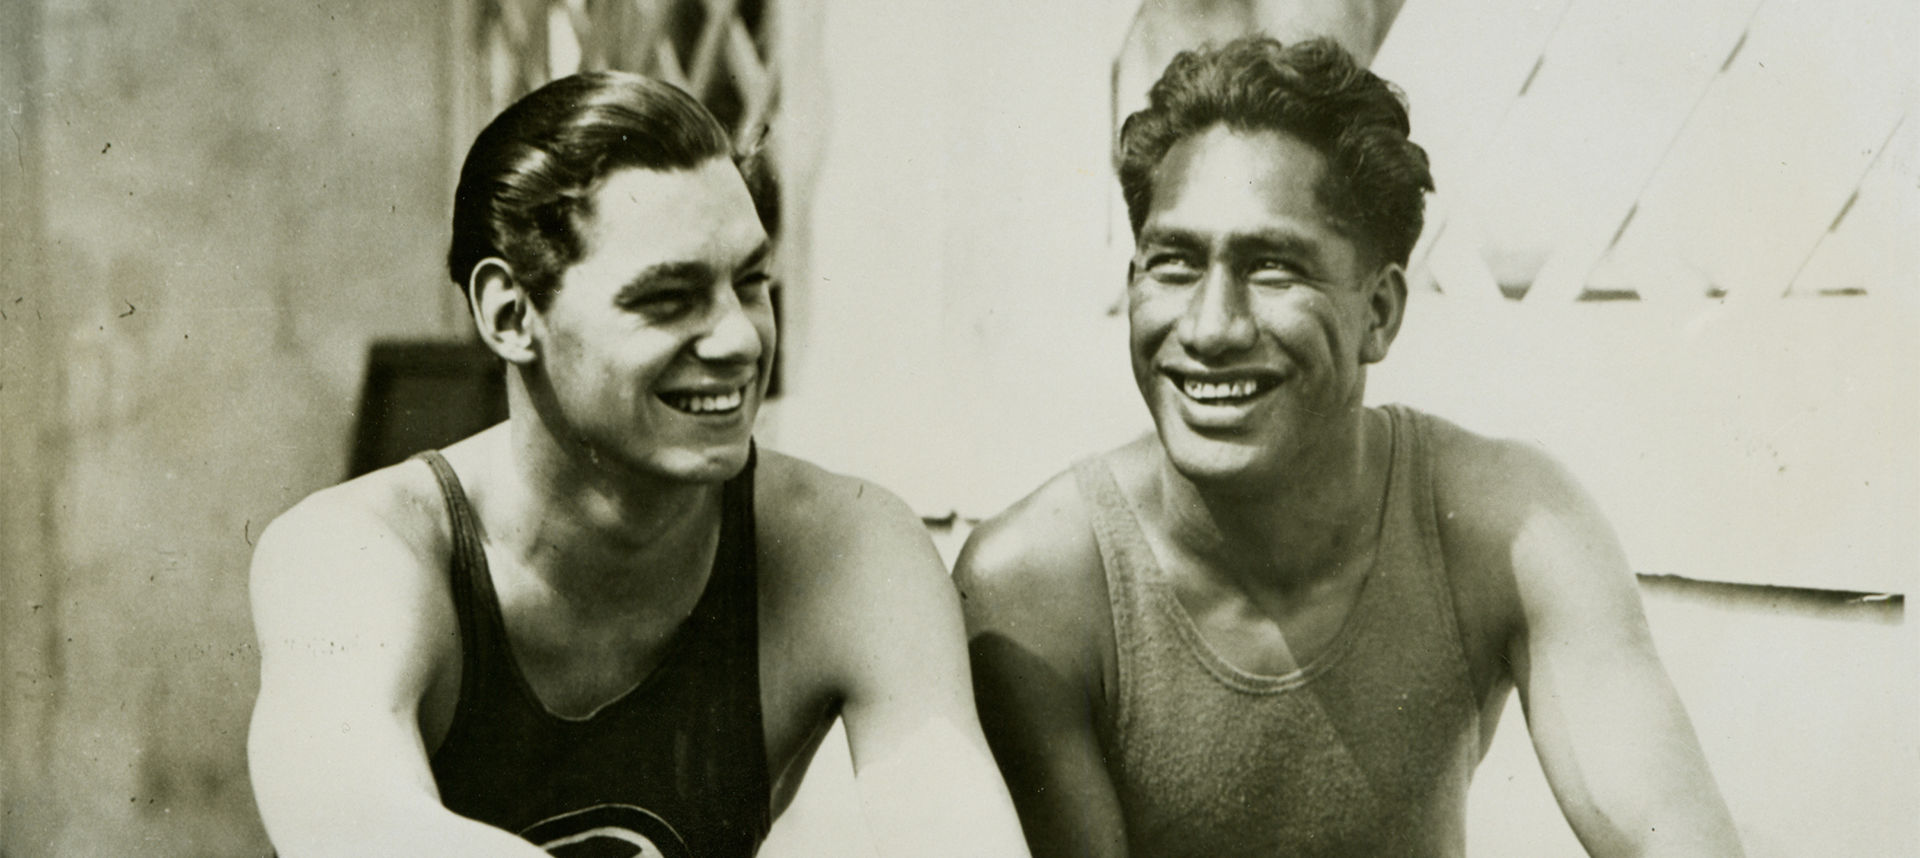 Duke Kahanamoku and friend